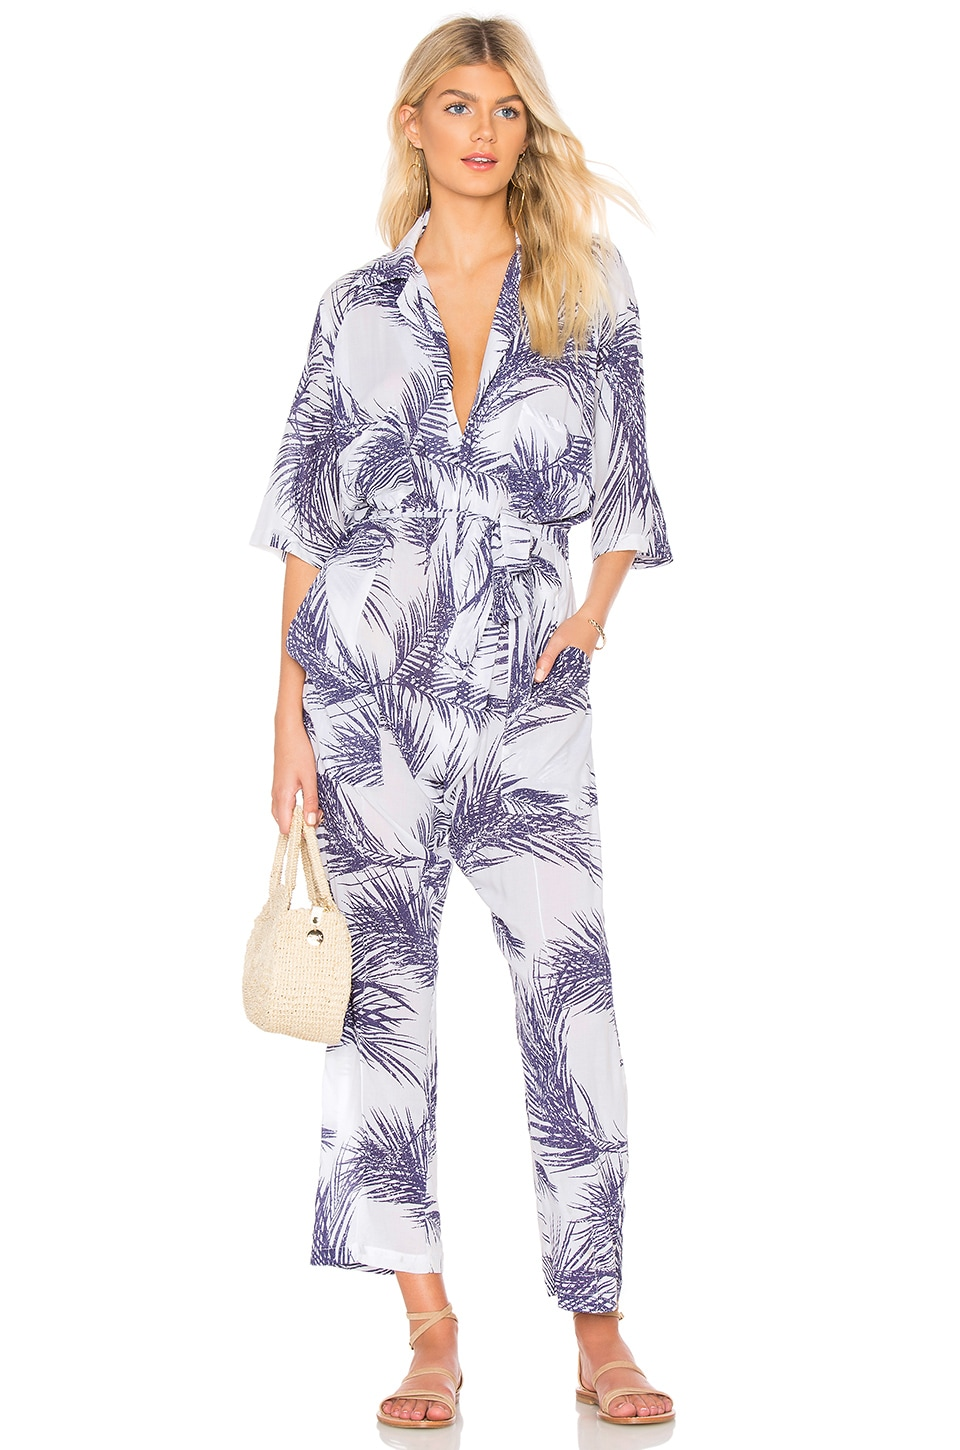 Apres Beach Jumpsuit